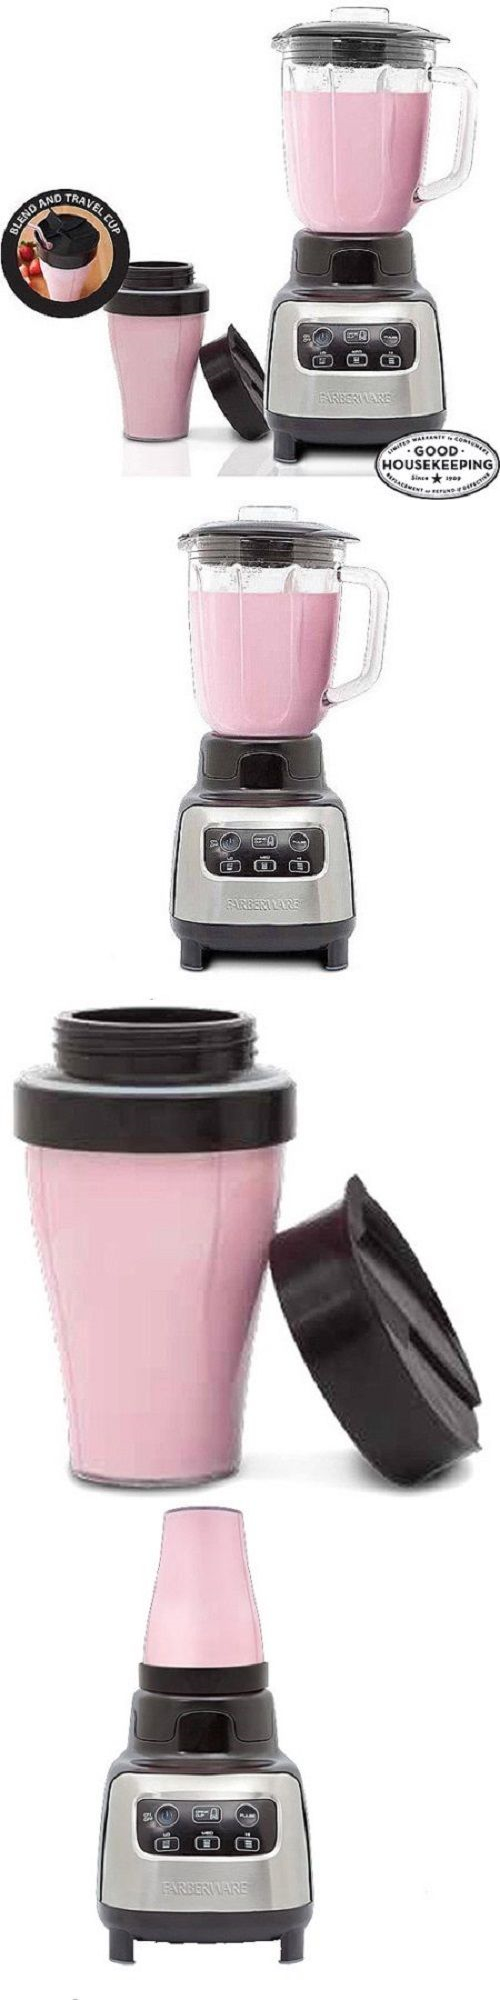 Uncategorized Ebay Kitchen Appliances small kitchen appliances new in box farberware 4 speed digital blender with travel